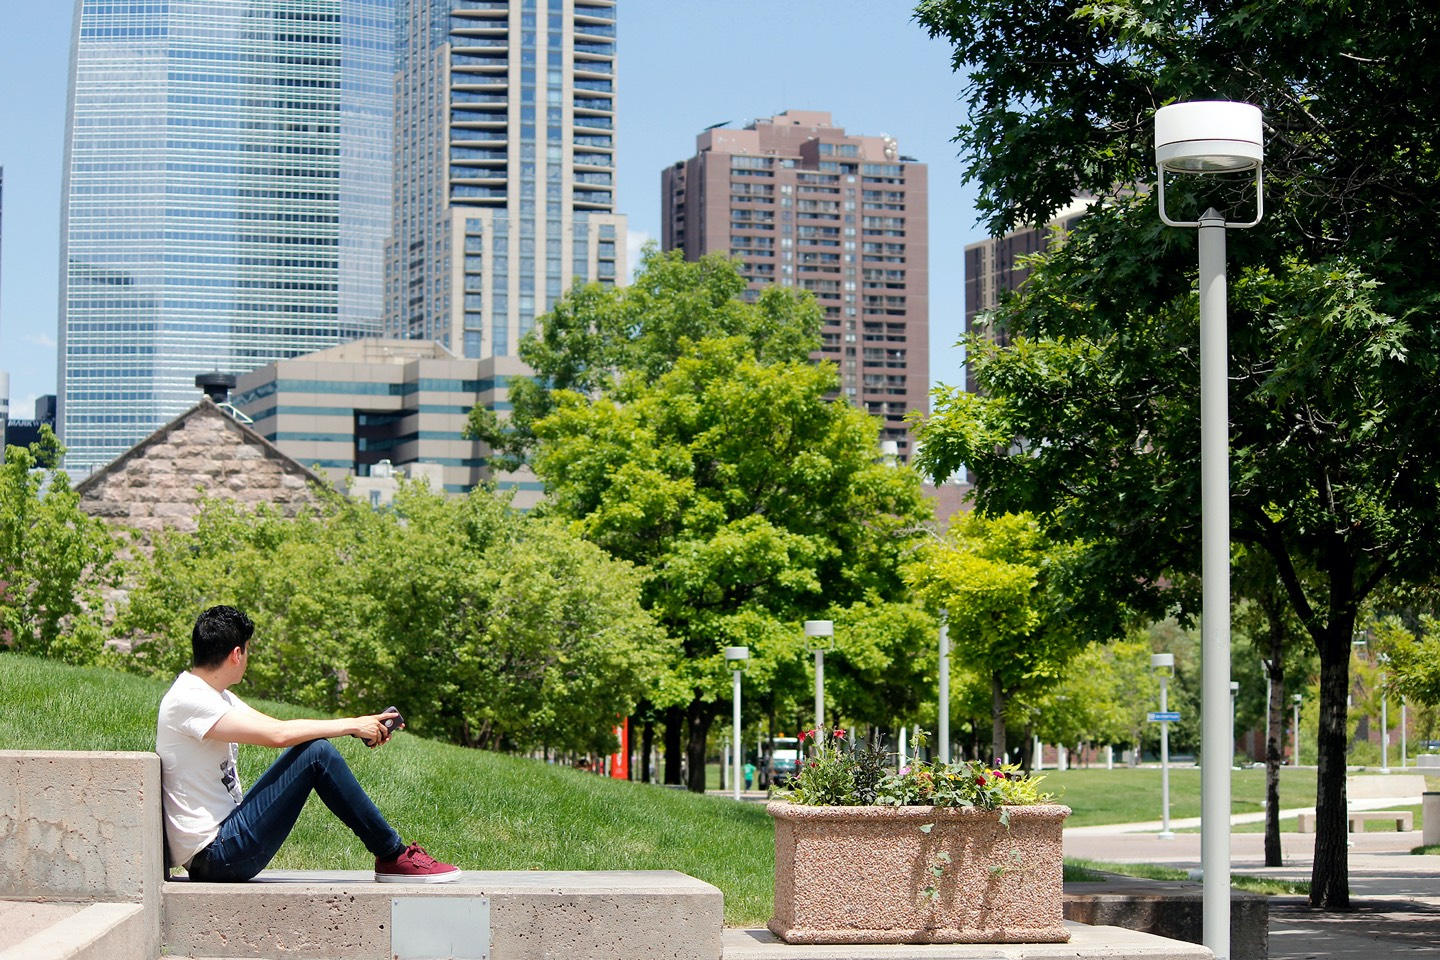 Student sitting outside looking at Denver skyscrapers and trees